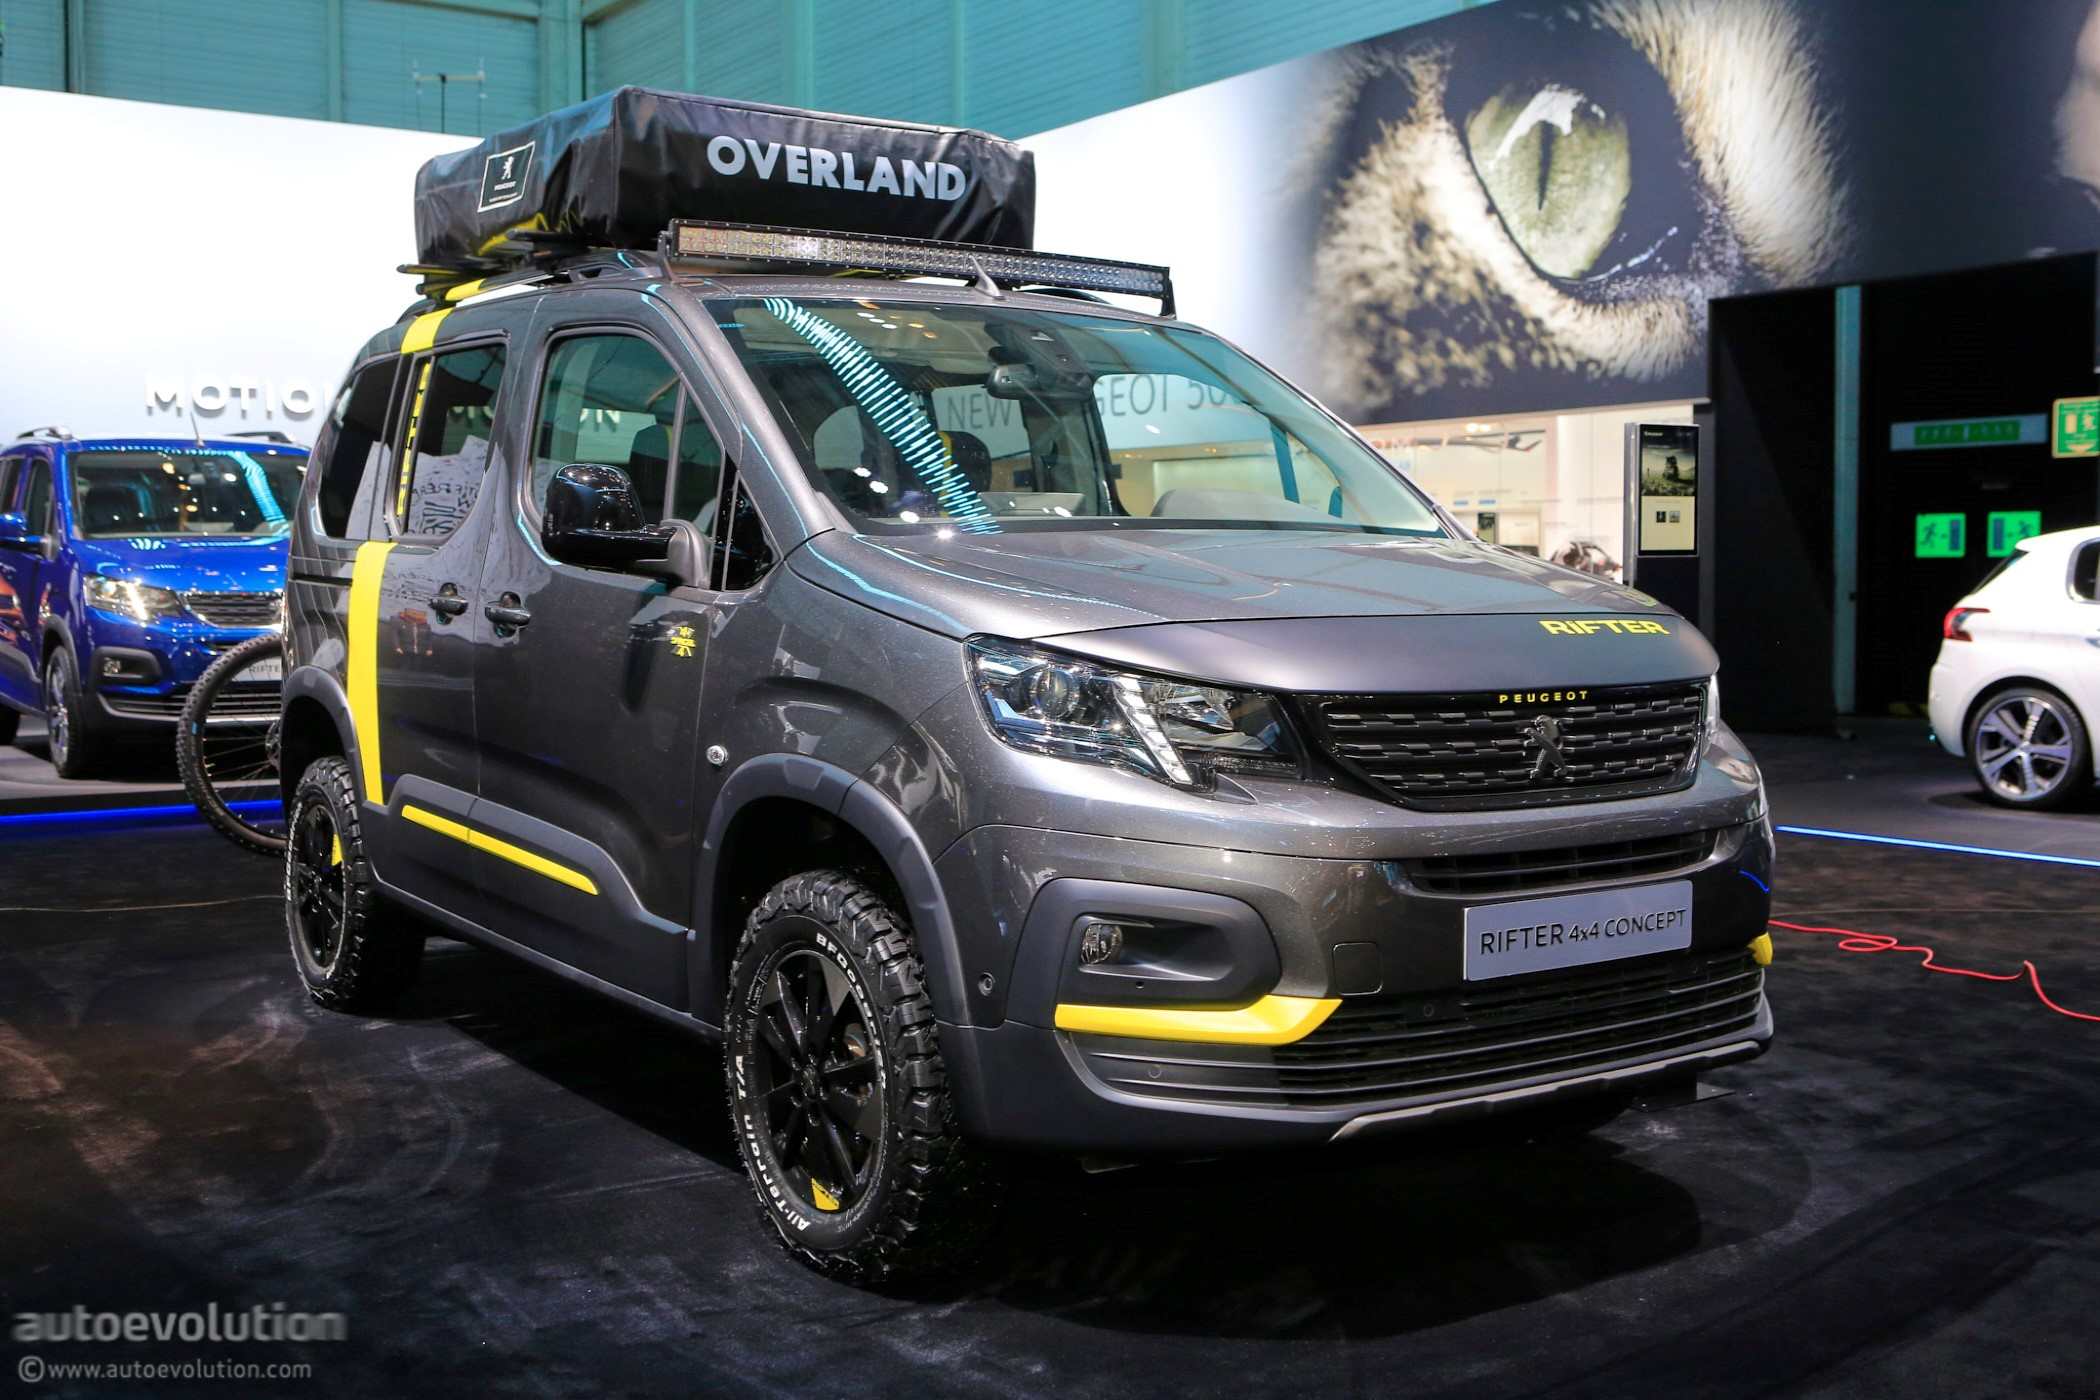 4x4 concept keeps the 2018 peugeot rifter company in geneva